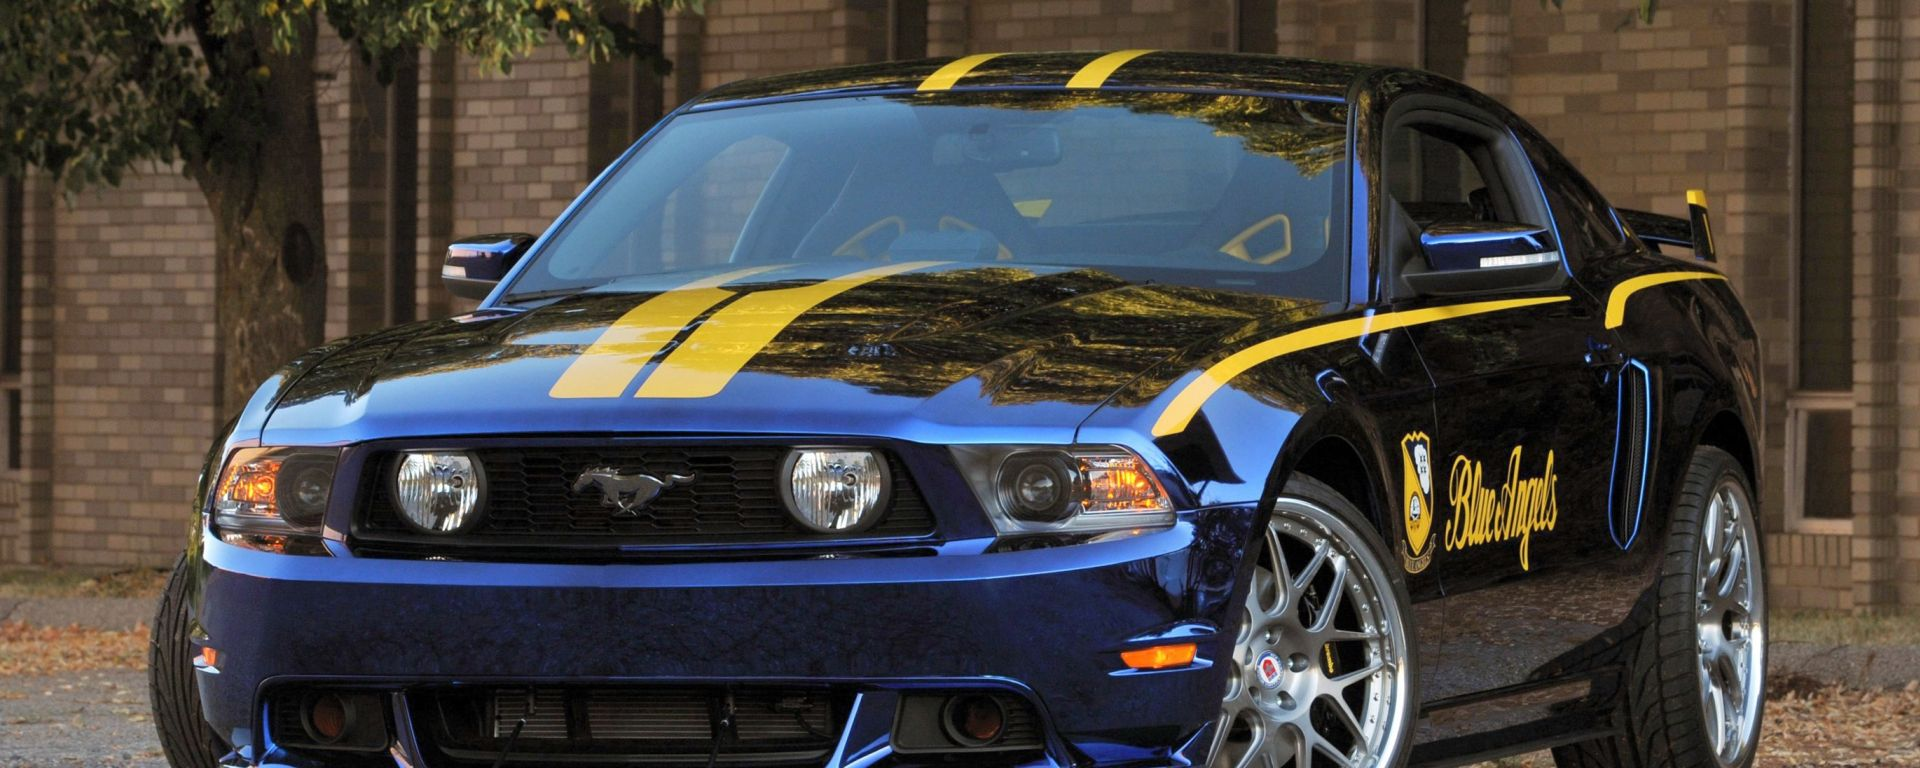 Ford Mustang Blue Angels